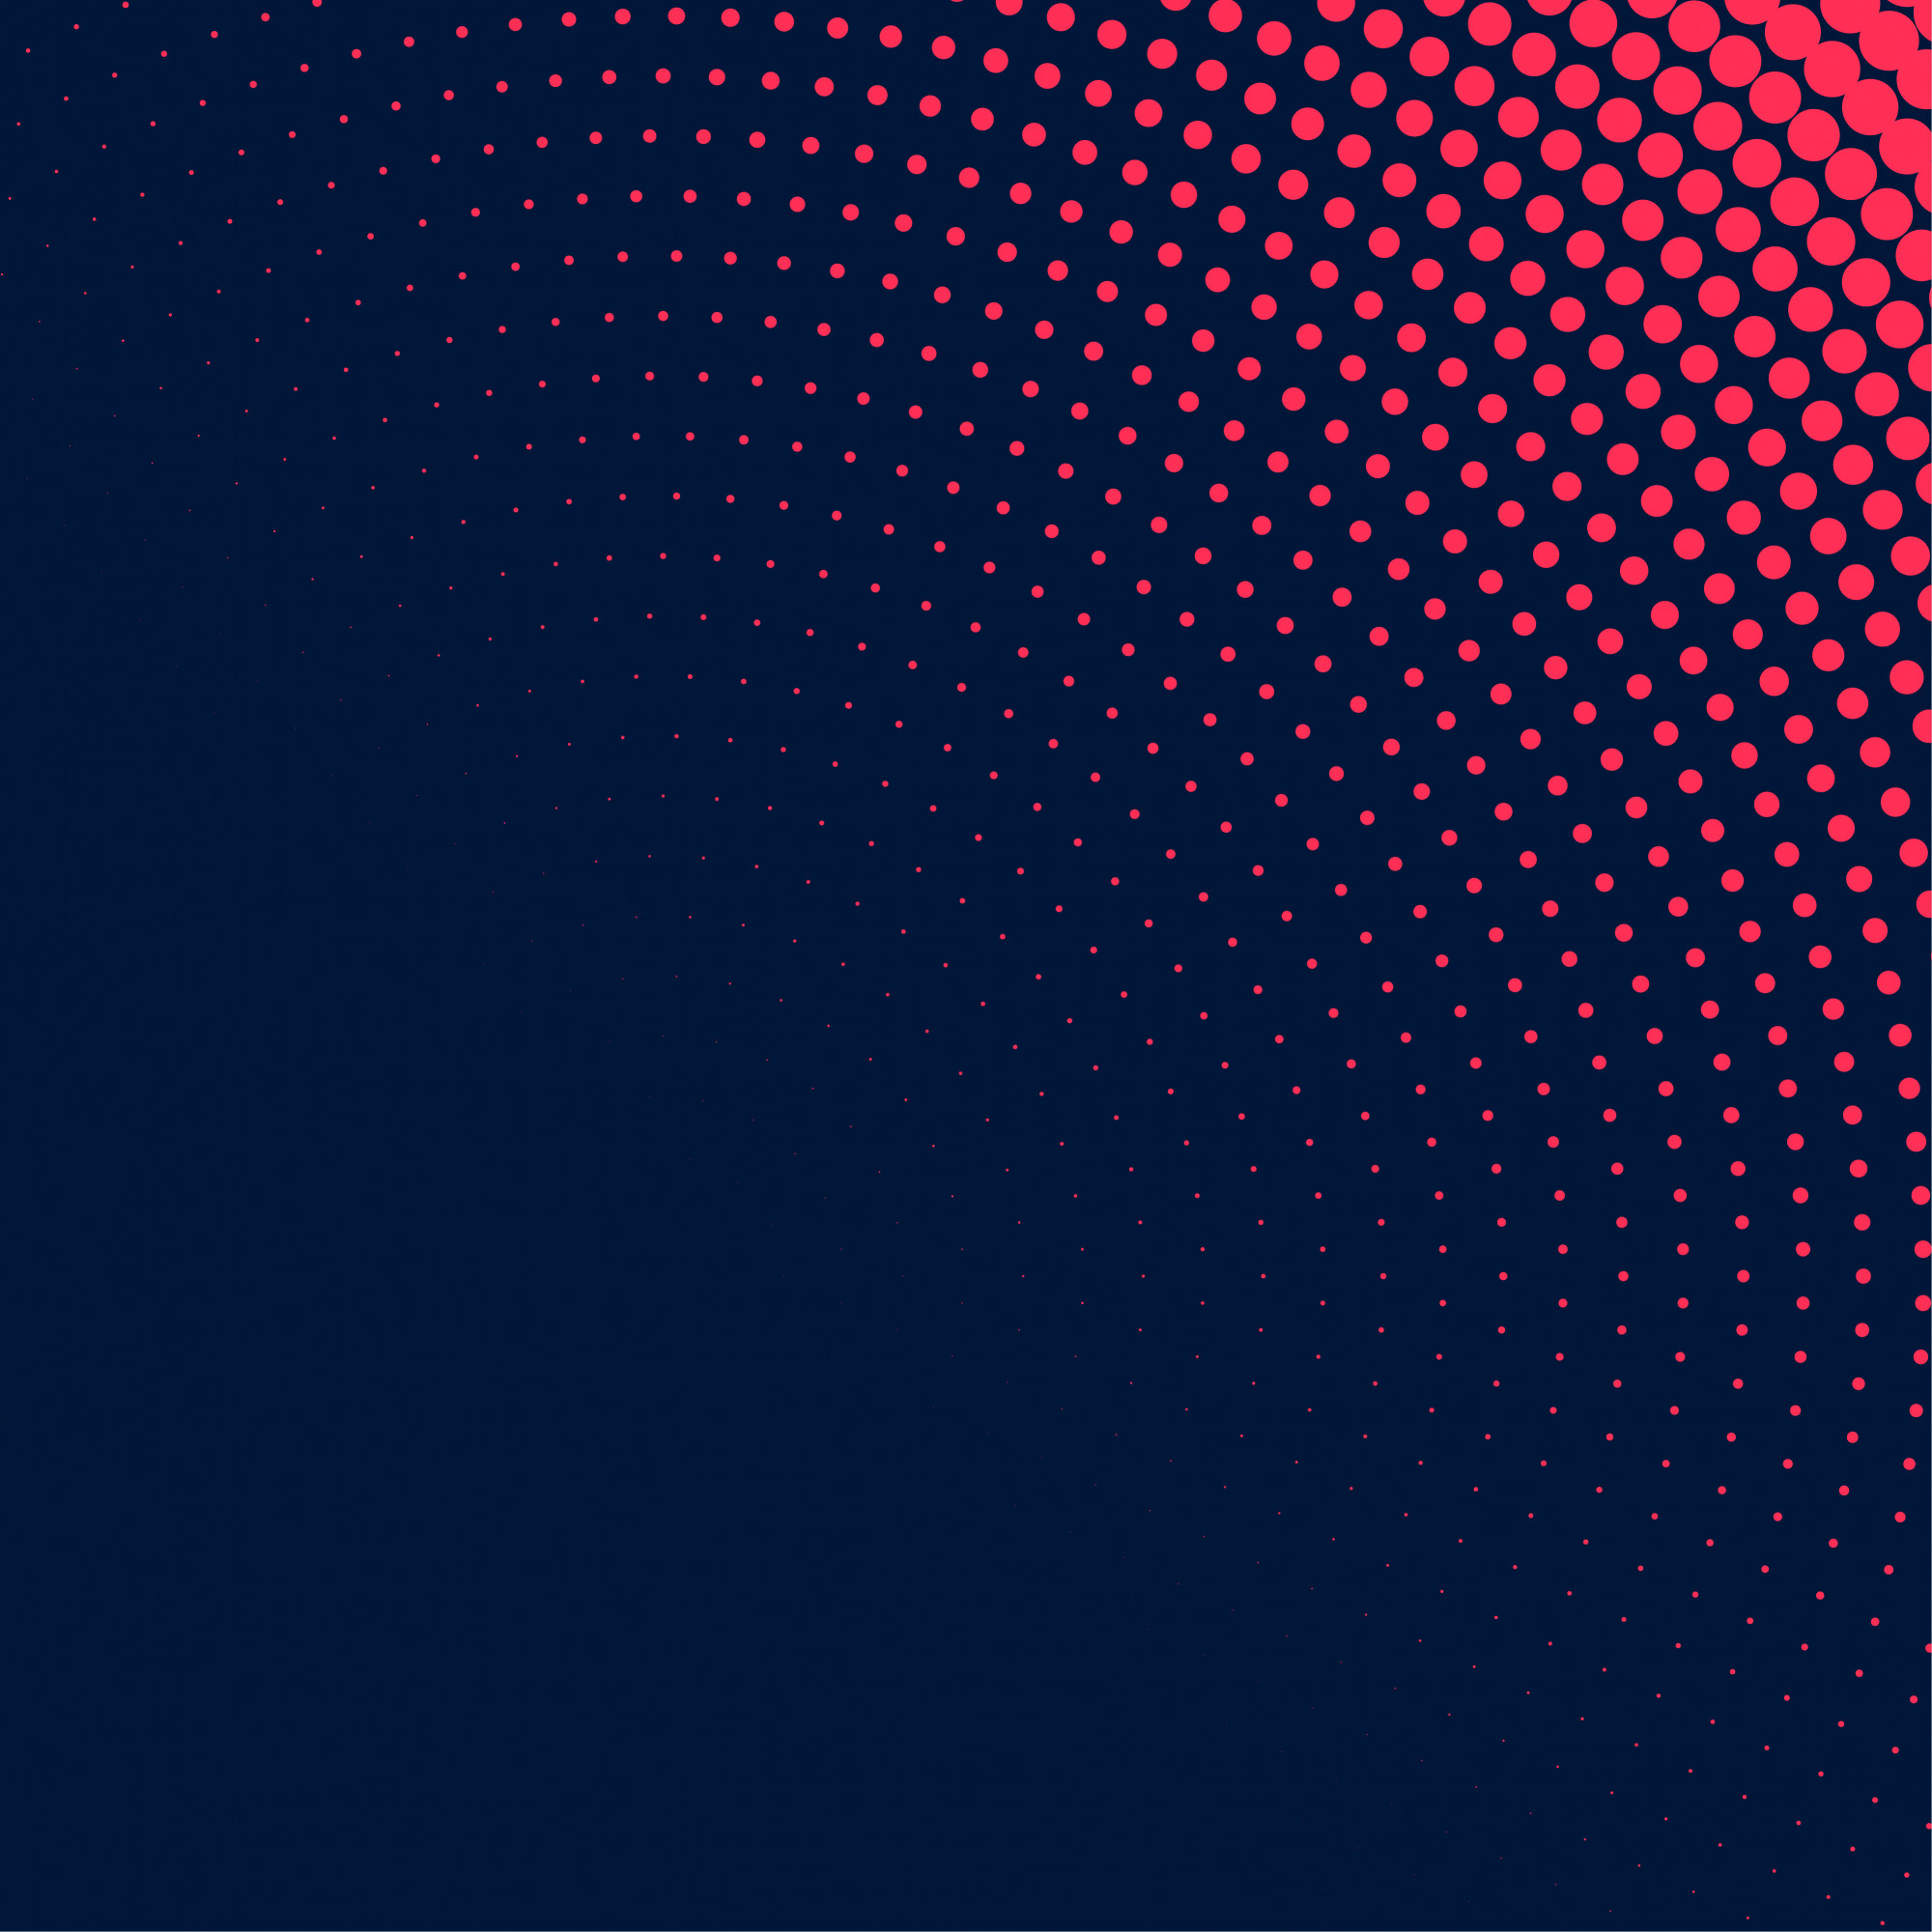 Abstract dark halftone background design